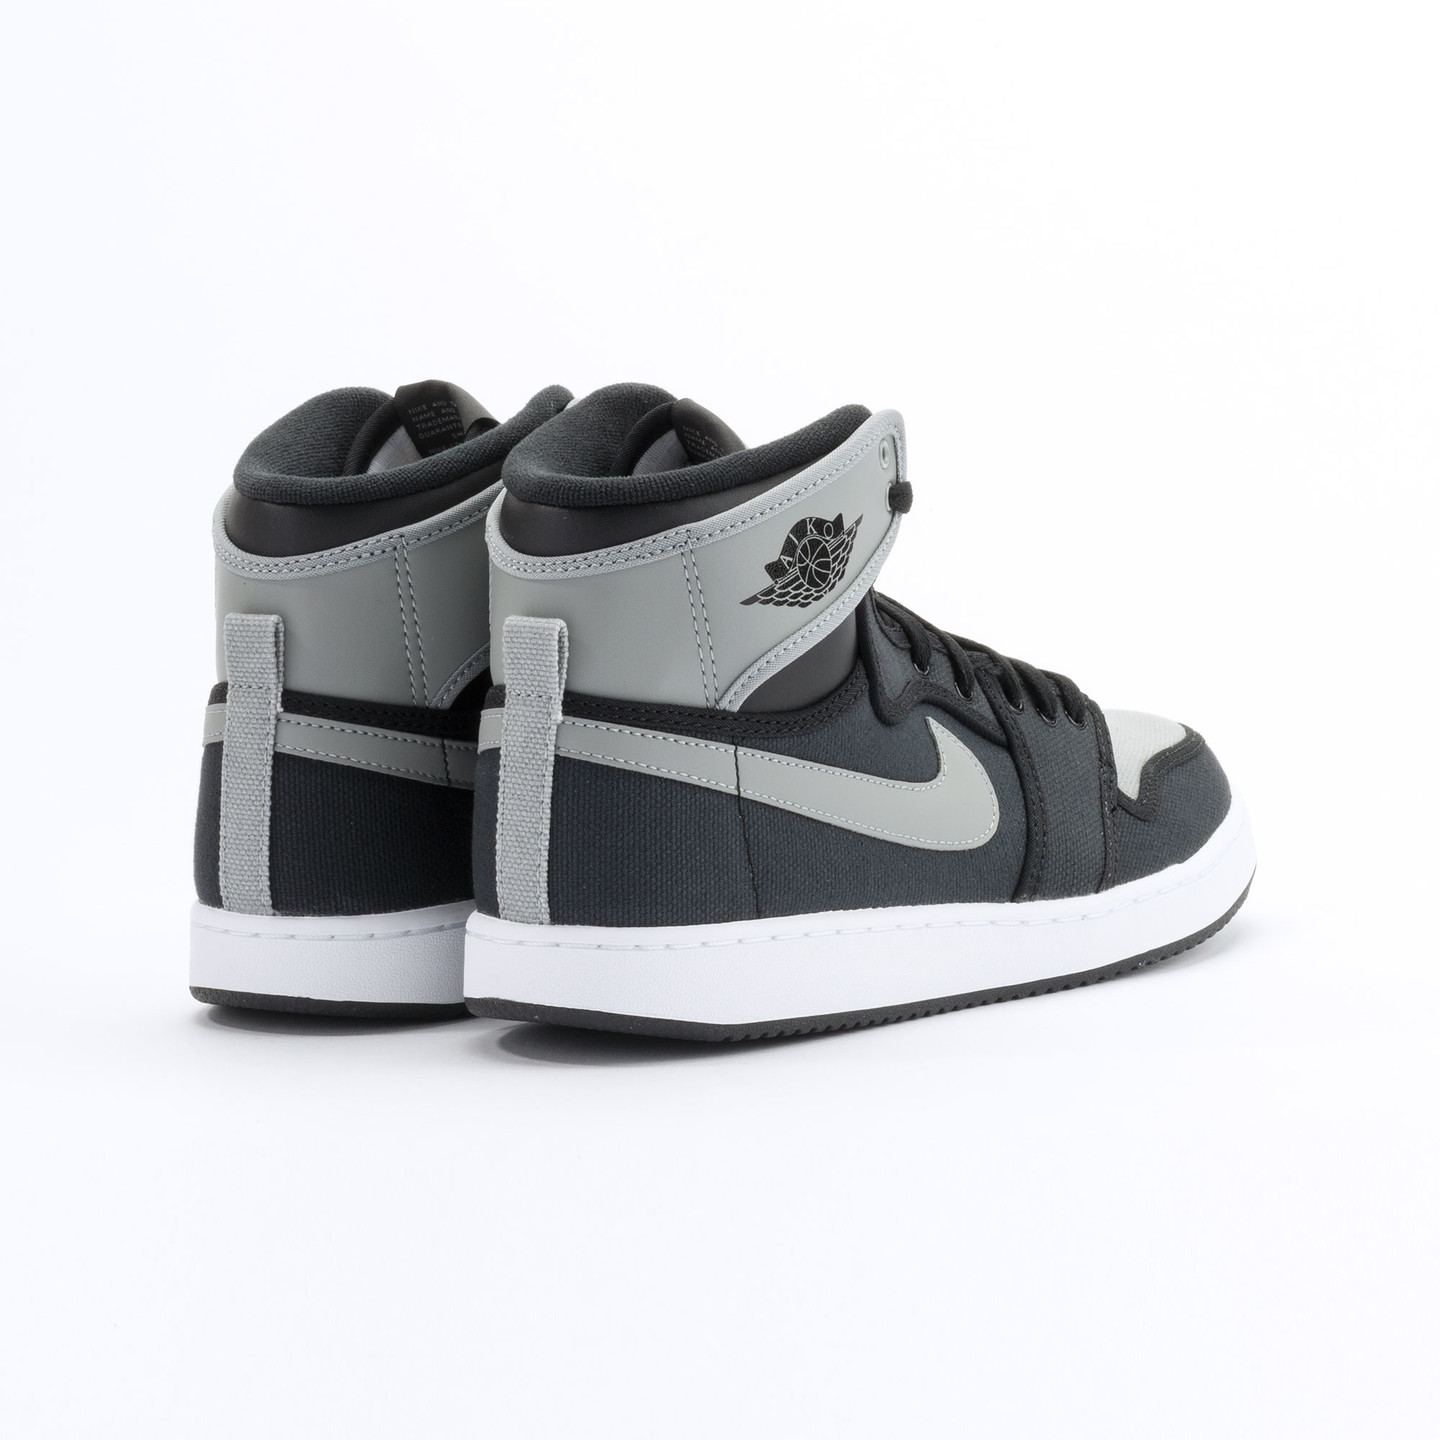 Nike Air Jordan 1 KO High OG Black / Shadow Grey / White 638471-003-42.5